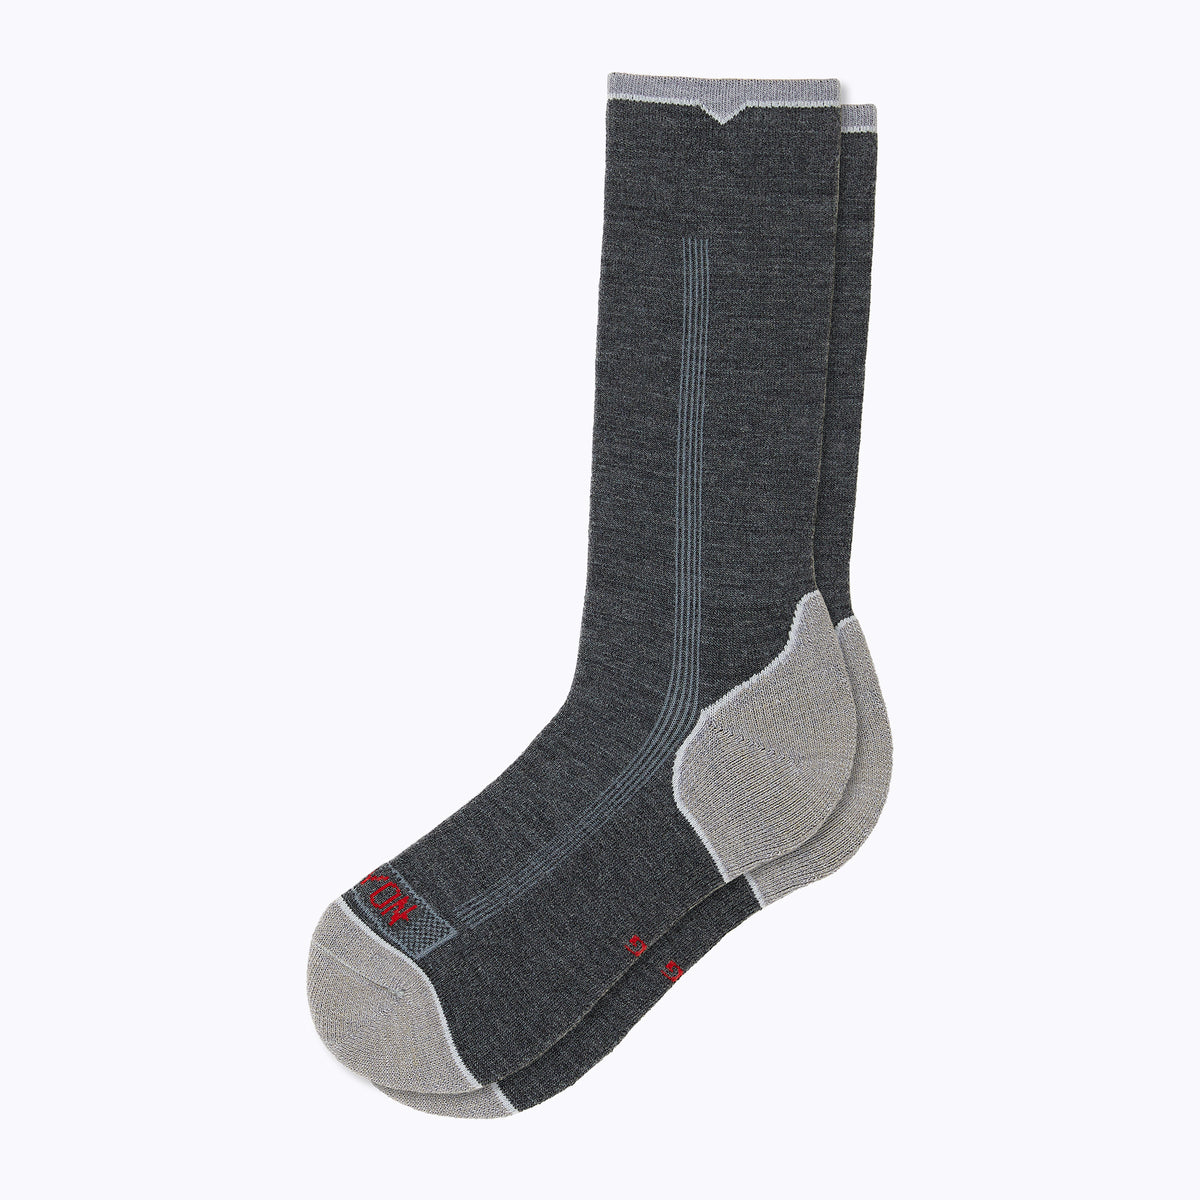 Destination Men's Crew Socks - Storm Grey by Canyon Socks